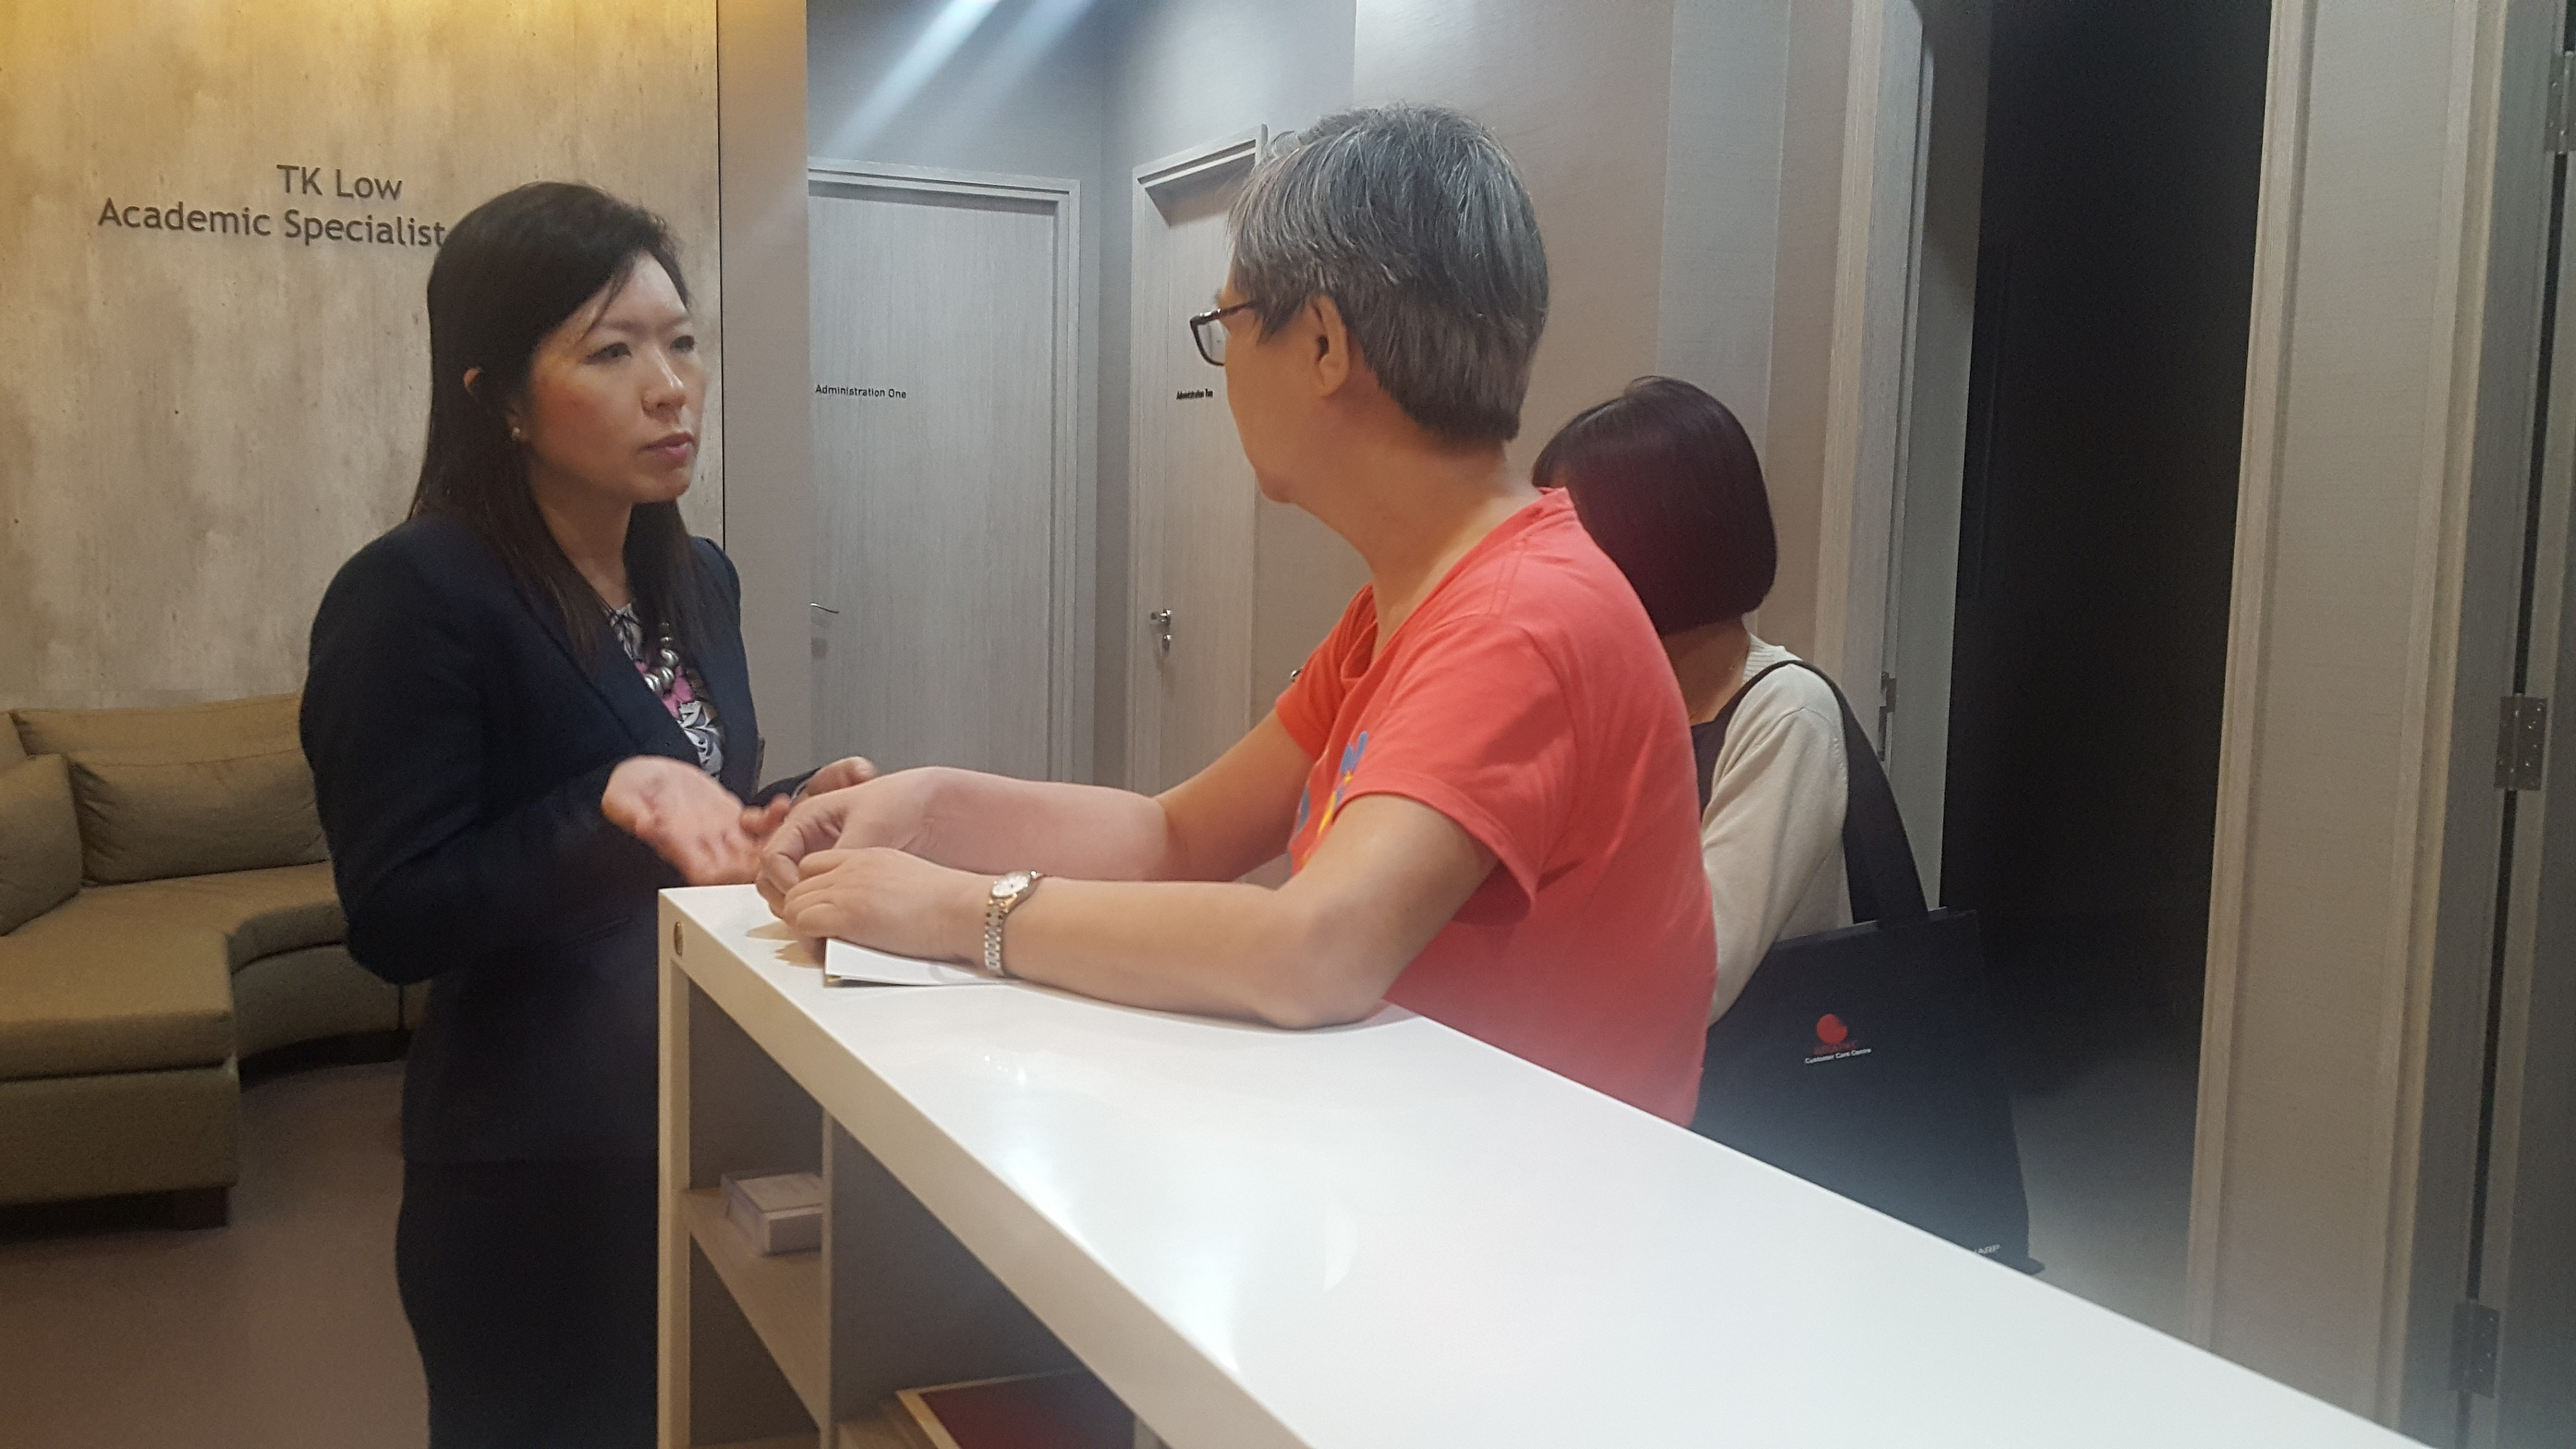 """Dr Joy Chan addressing queries from a participant at the end of the free public forum on """"Common Eye Conditions"""" in Farrer Park Hospital held in conjunction with Awareness of Macular Diseases Week 2017."""